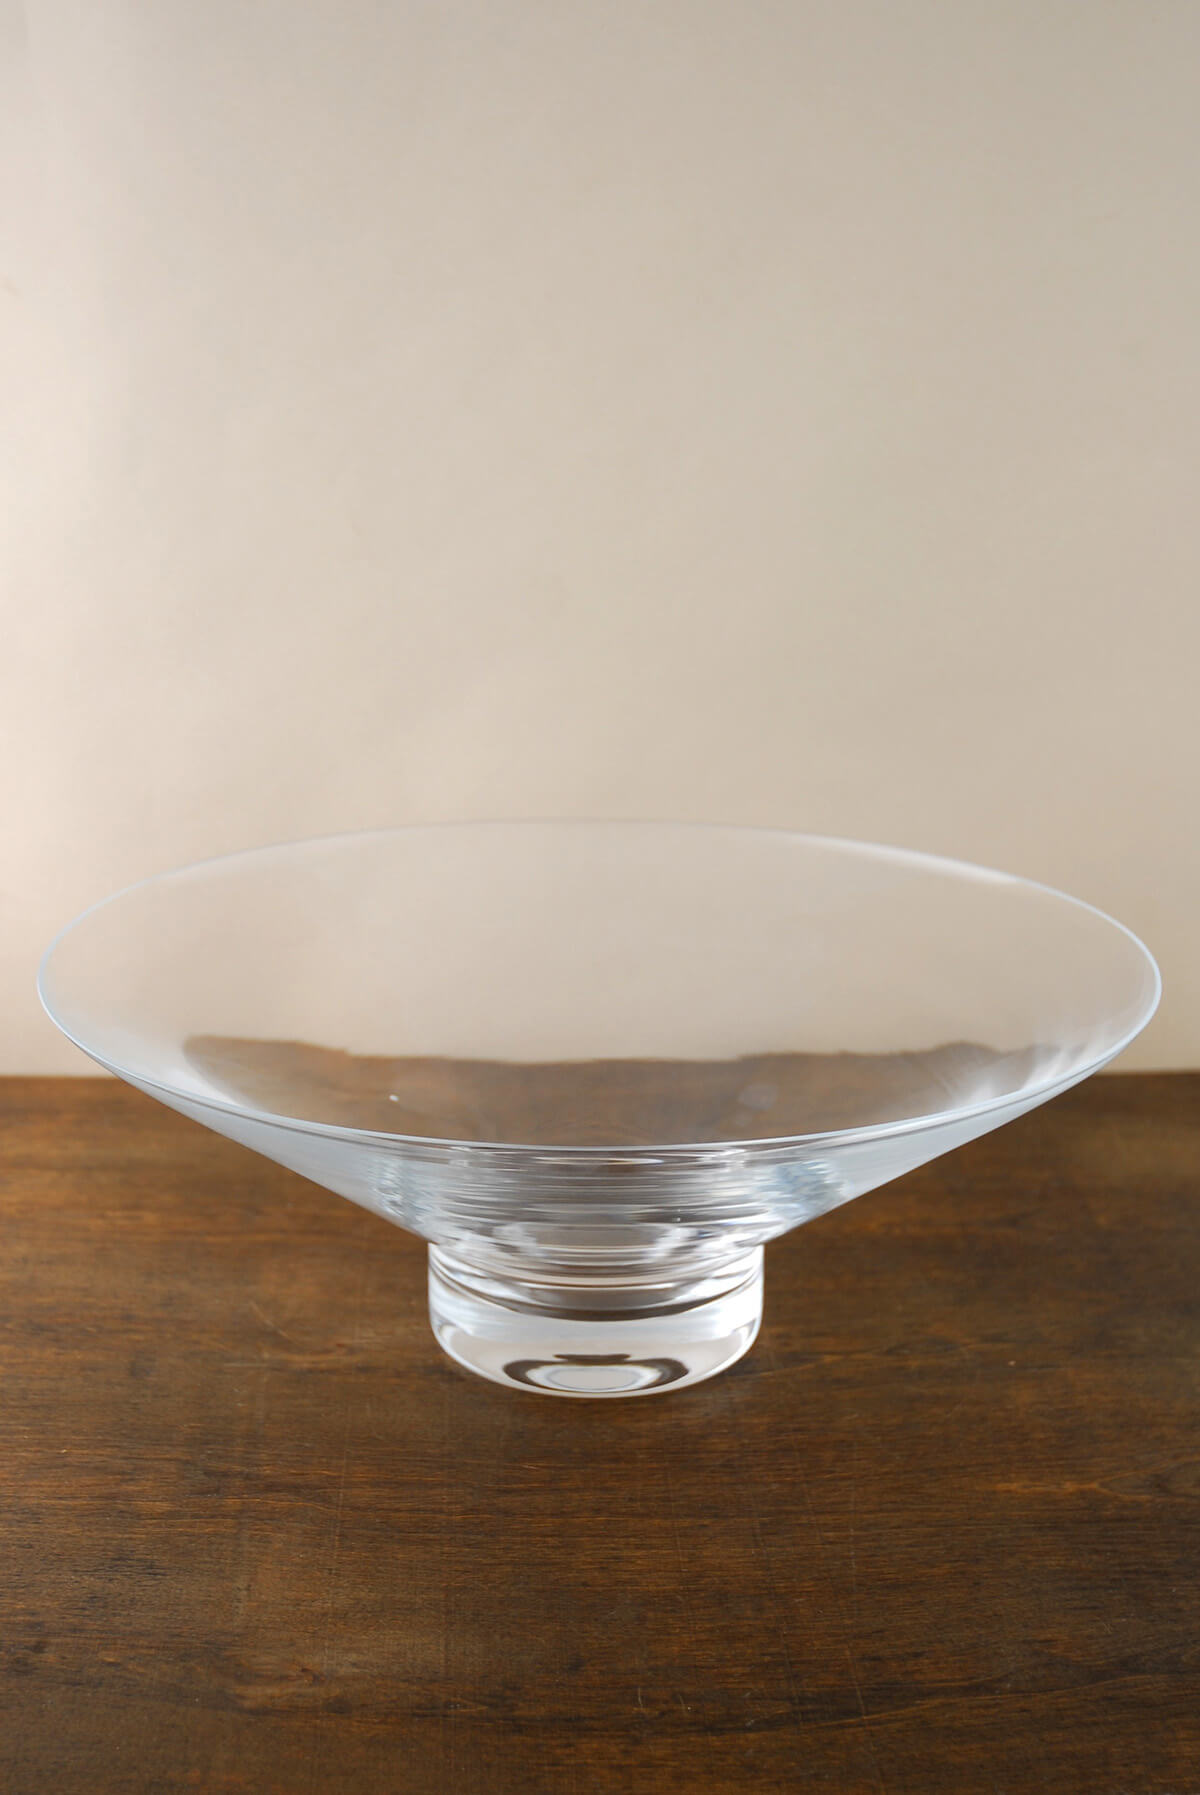 Floating candle bowl in